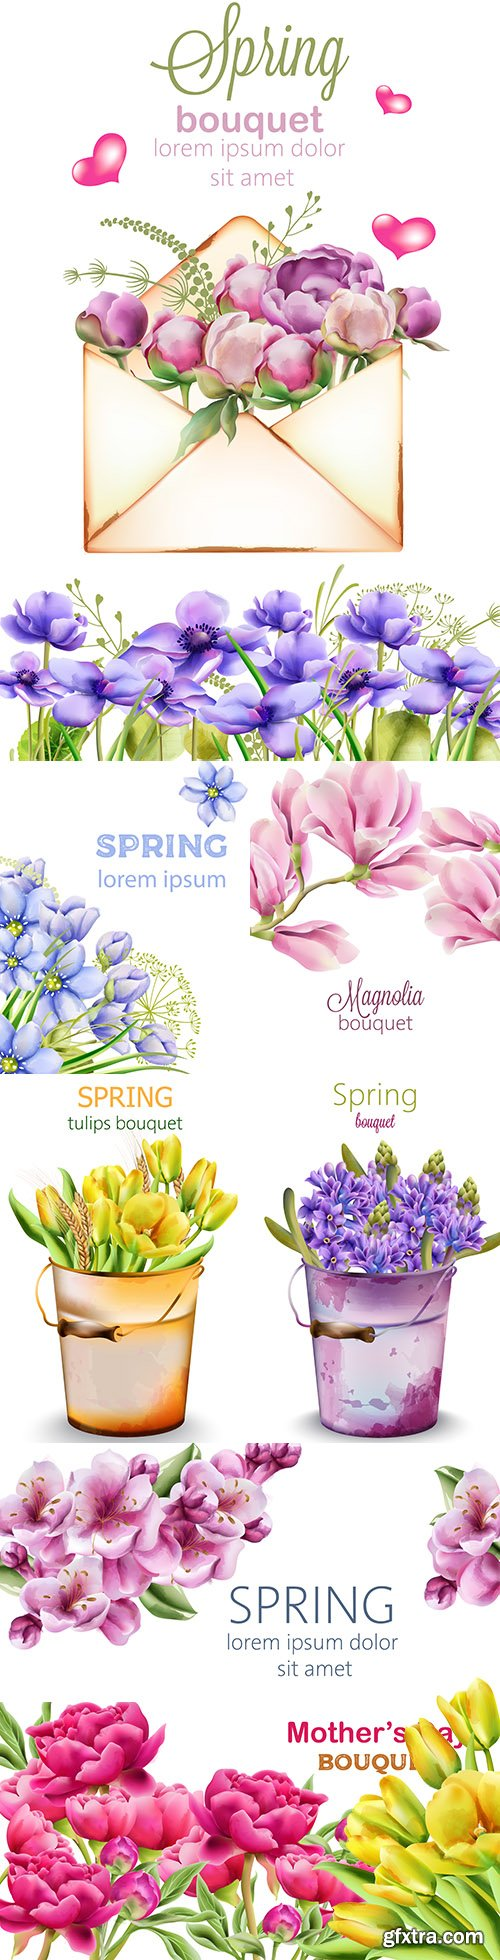 Spring bouquet watercolour flowers with green leaves 2